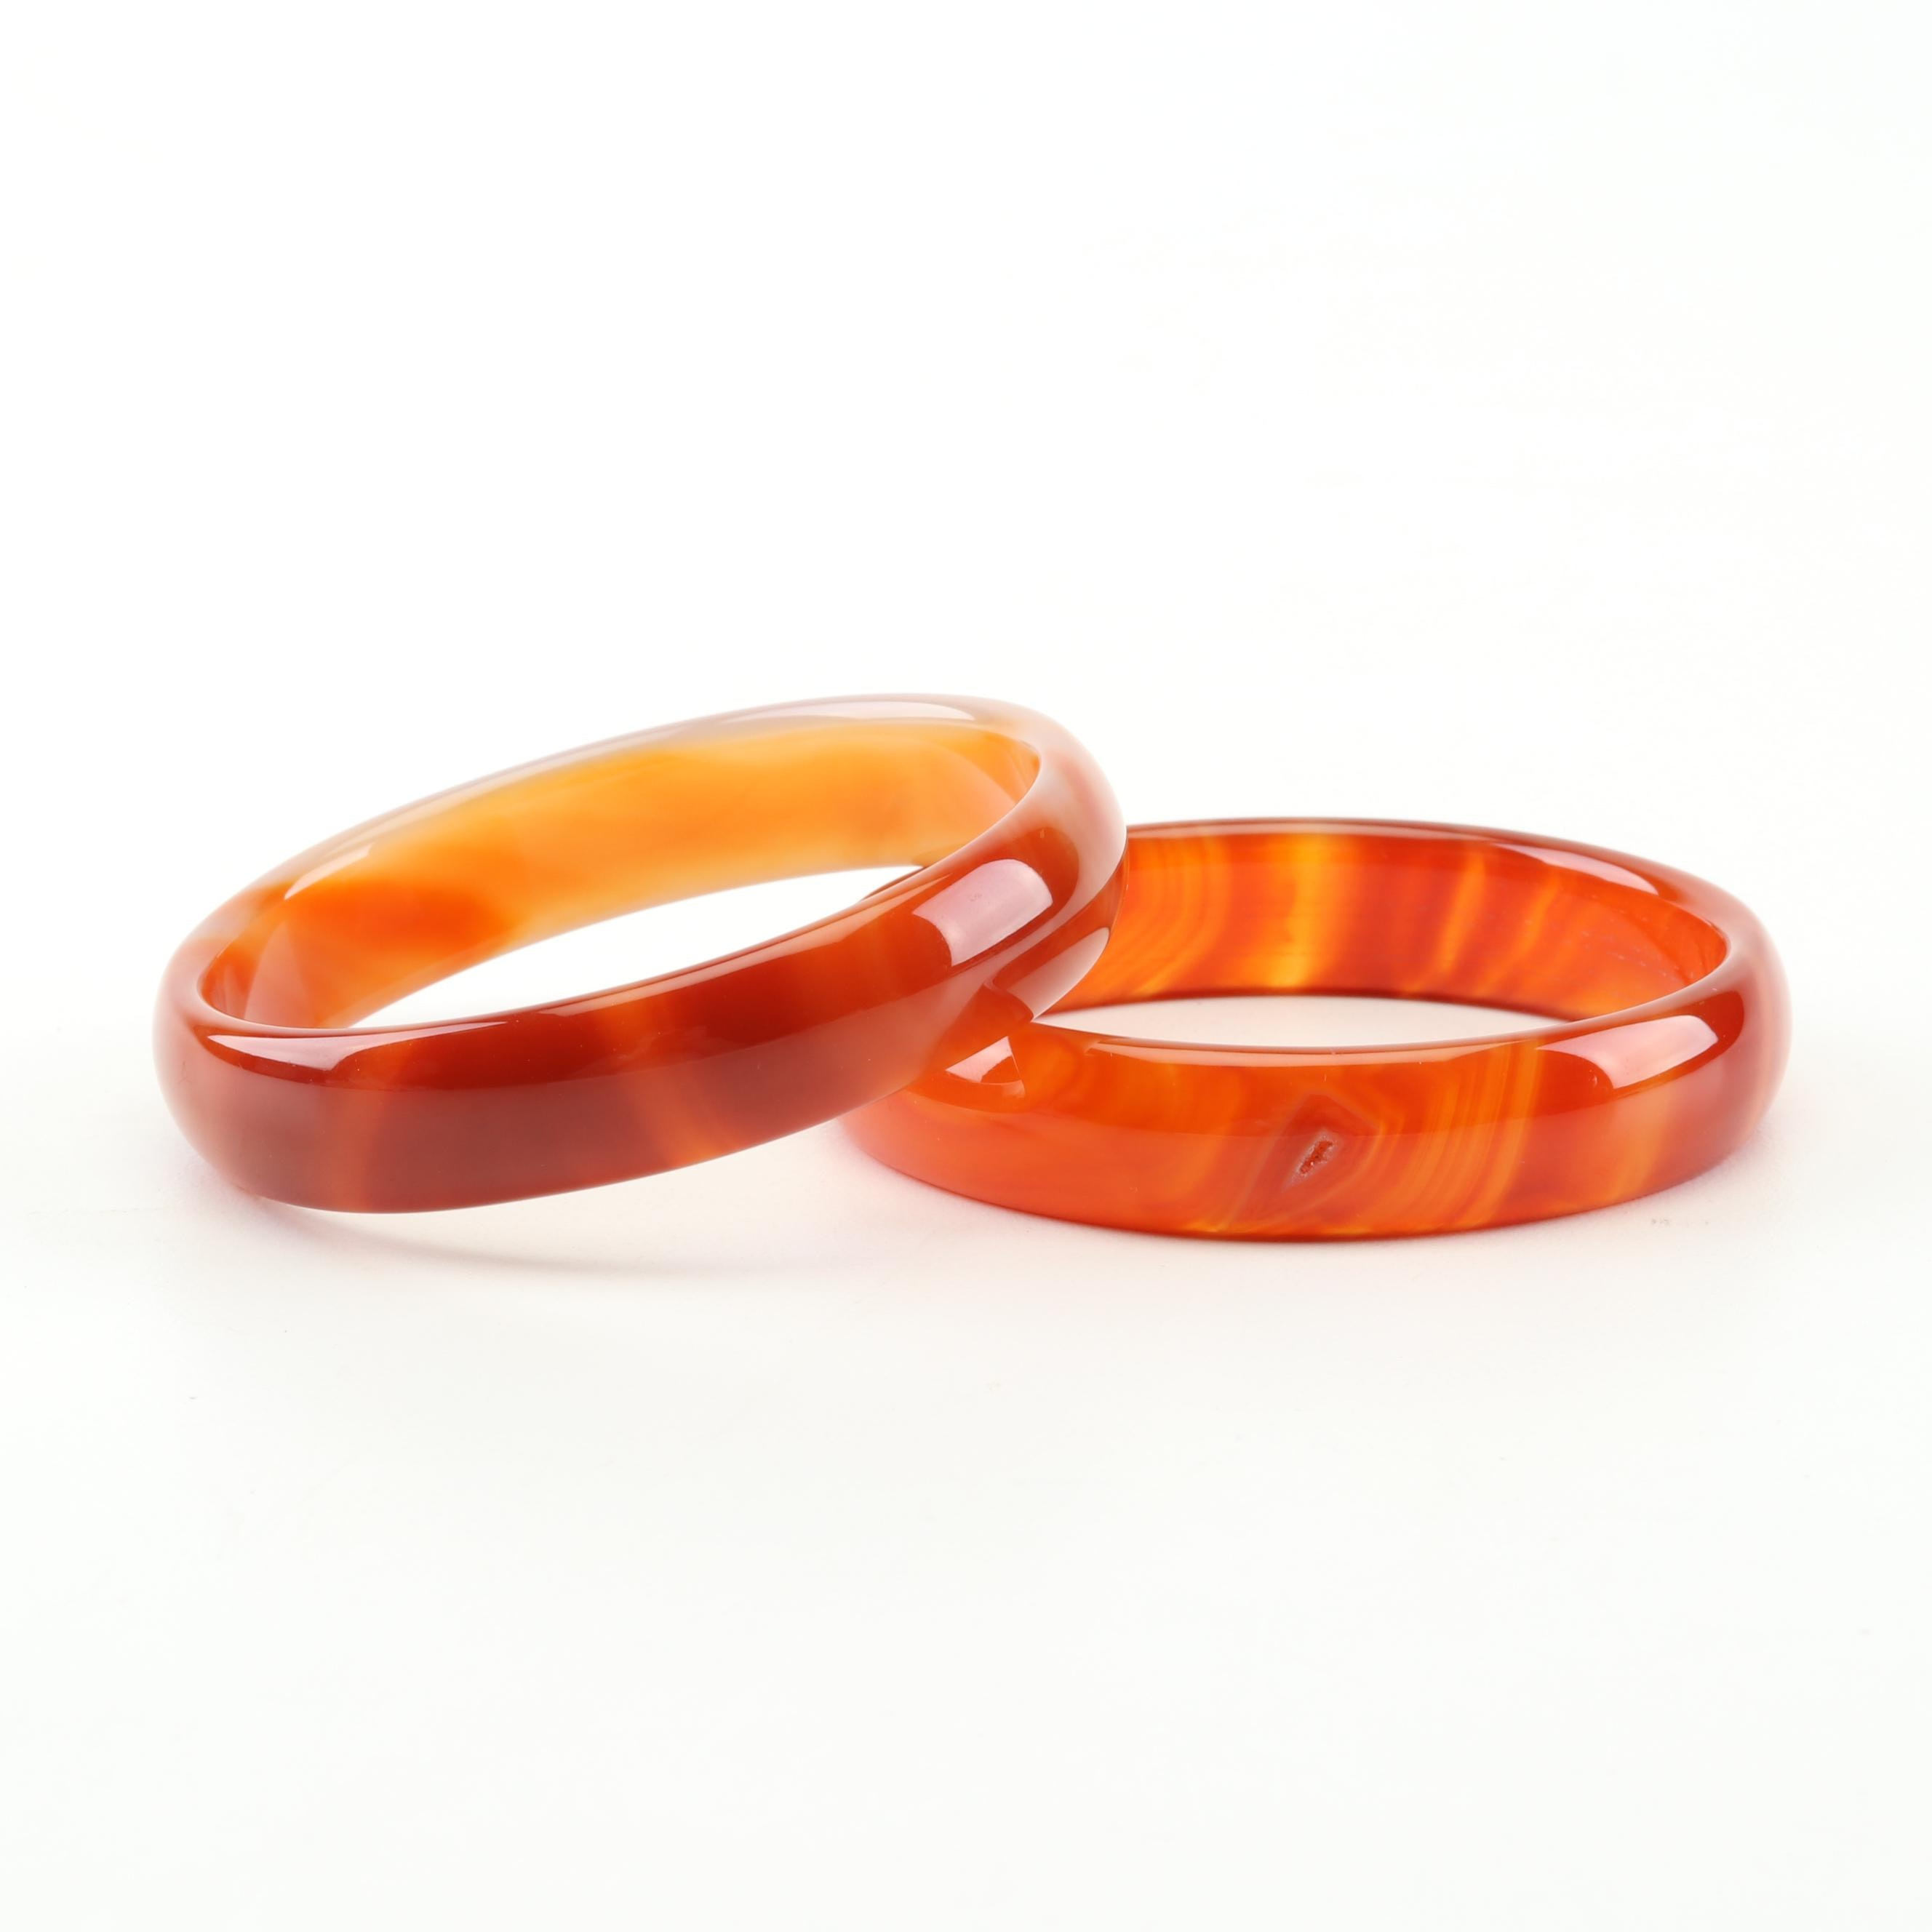 Banded Agate Bangle Bracelets